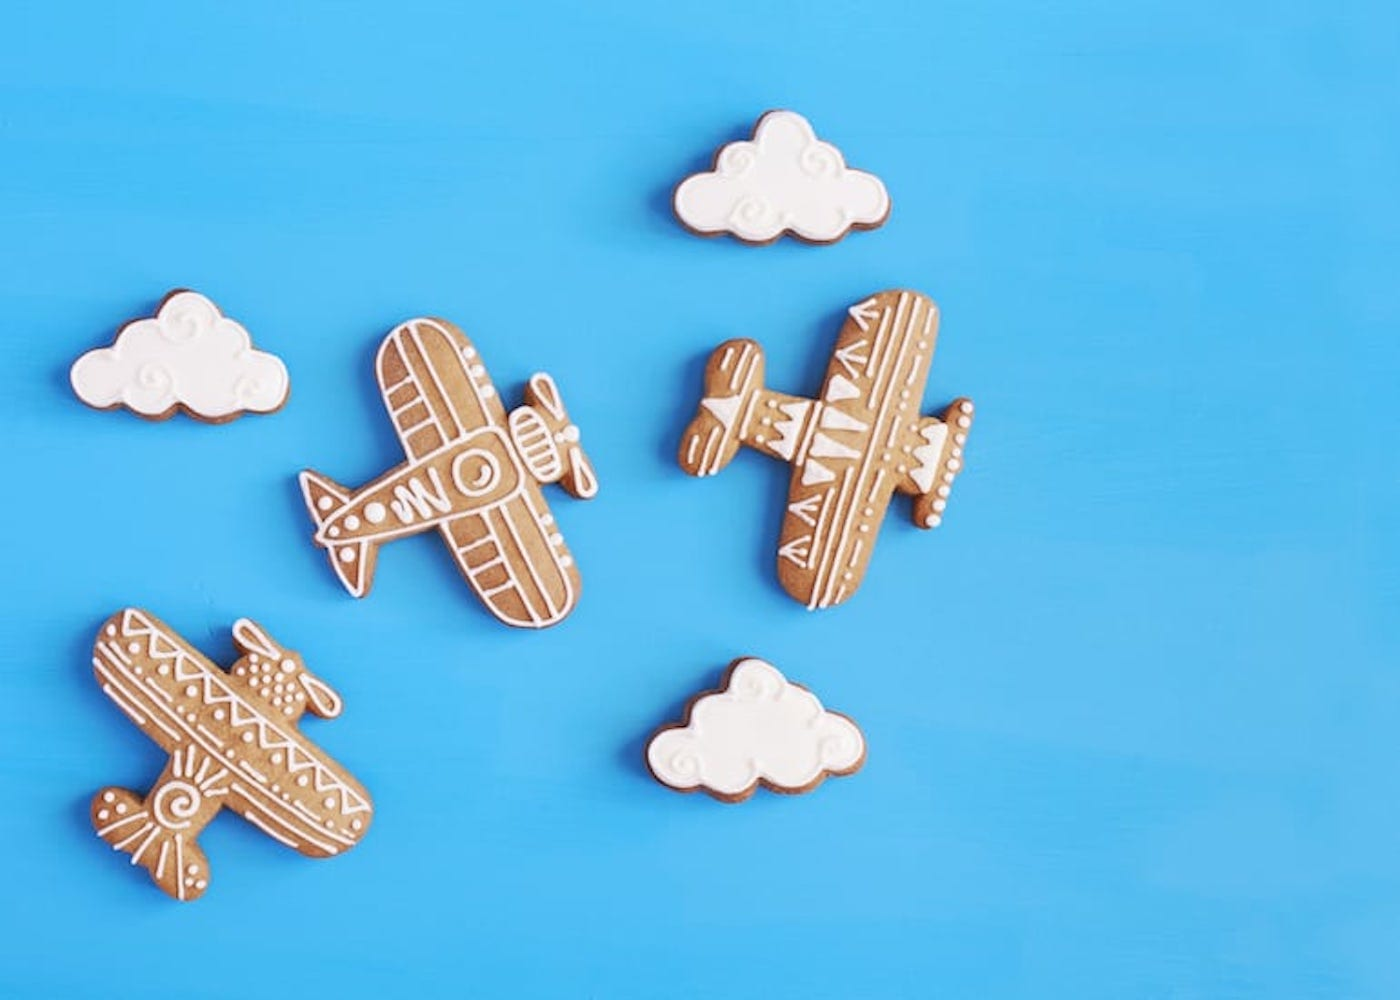 Snacks on a plane! The easy-peasy guide to packing plane snacks for kids